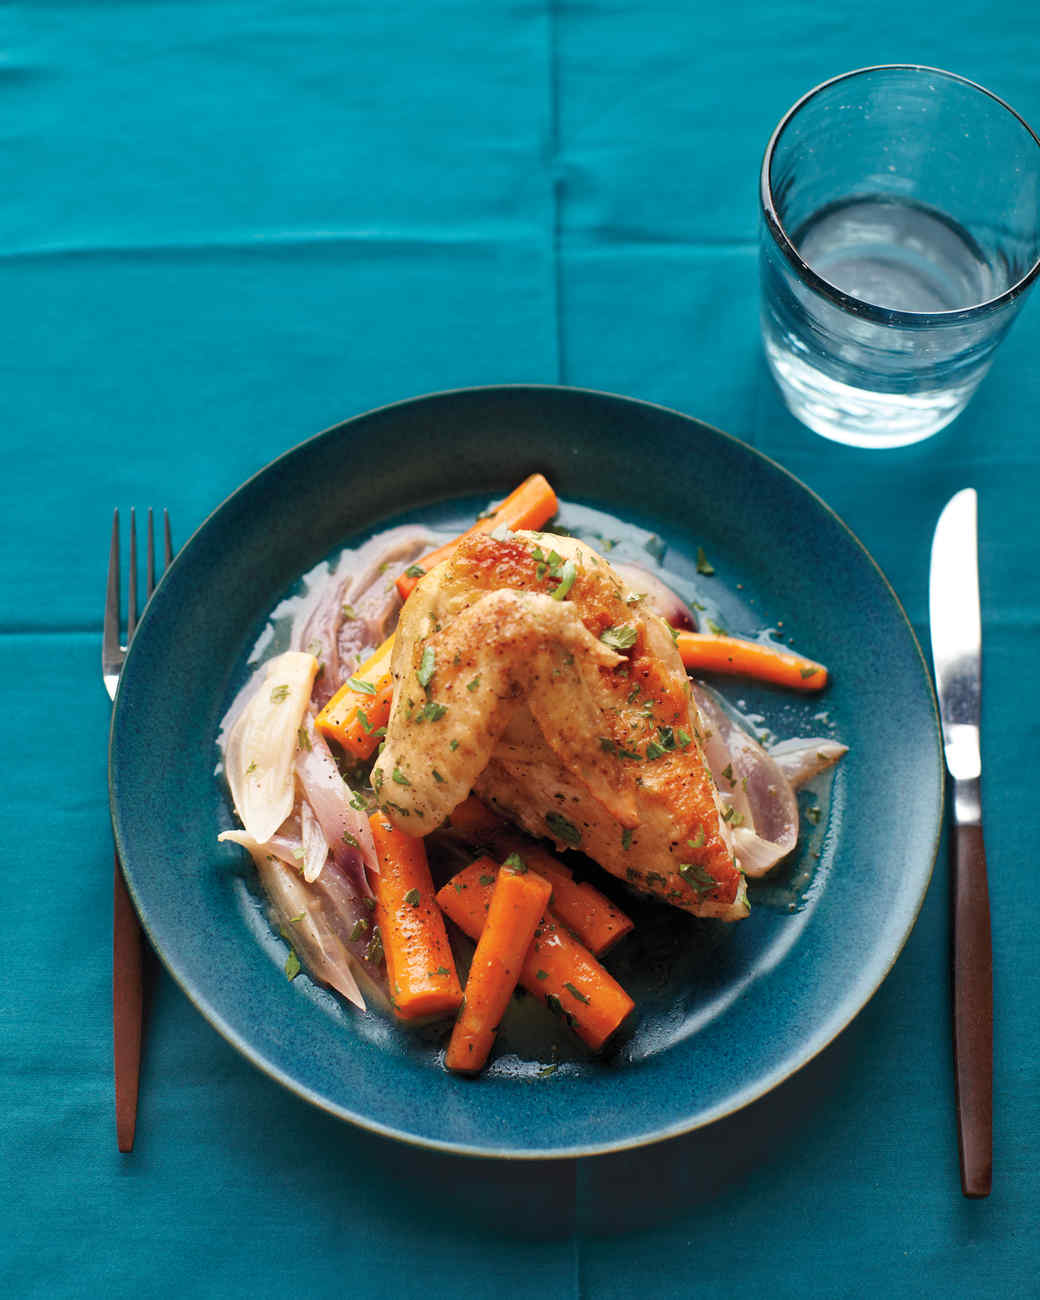 Braised Chicken with Red Onion and Carrots